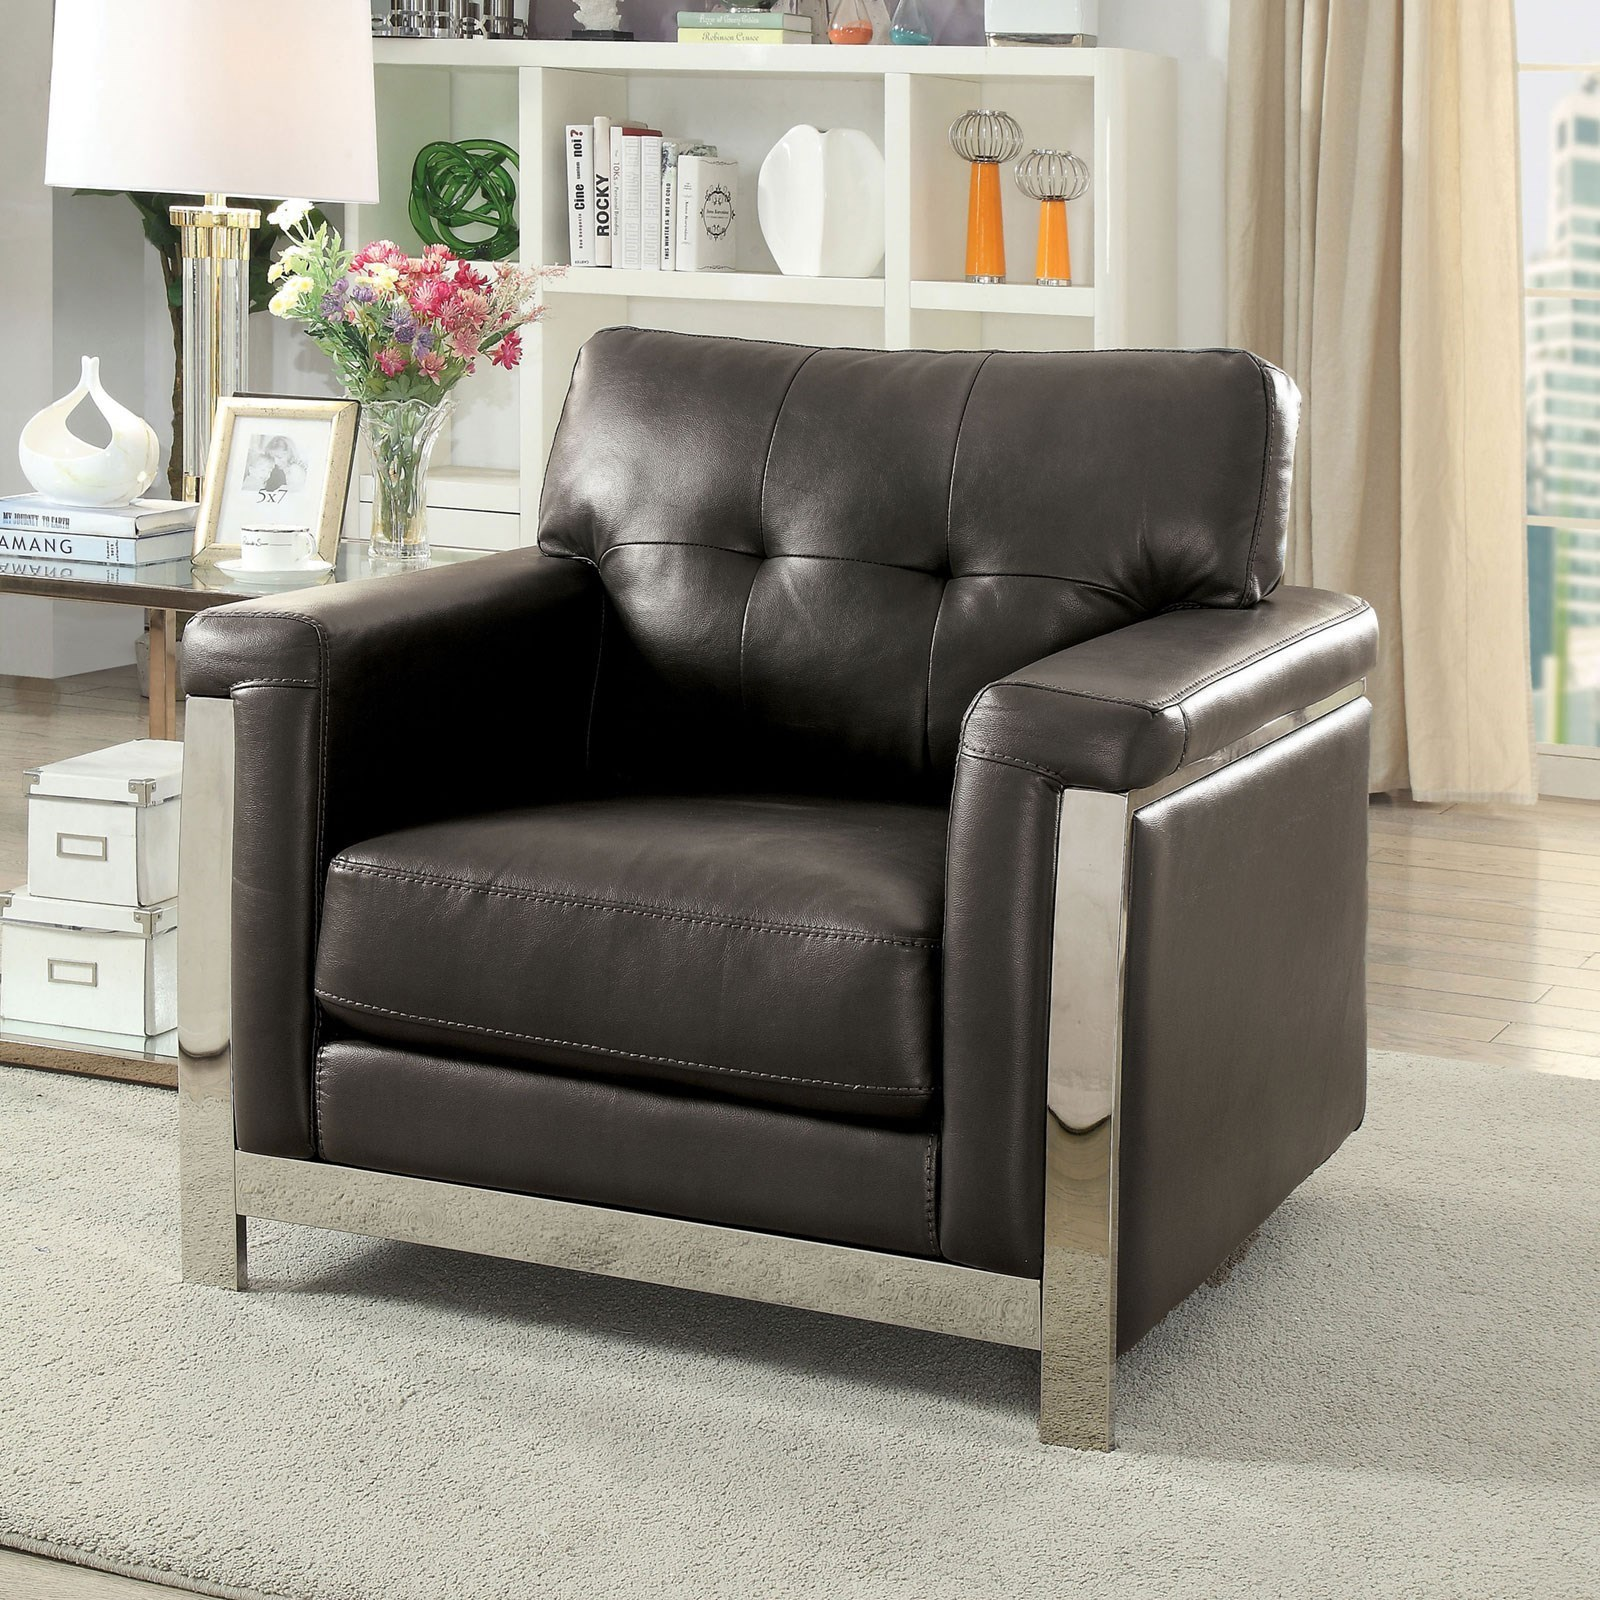 Furniture of America Nanette Contemporary Chair with Stainless Steel ...